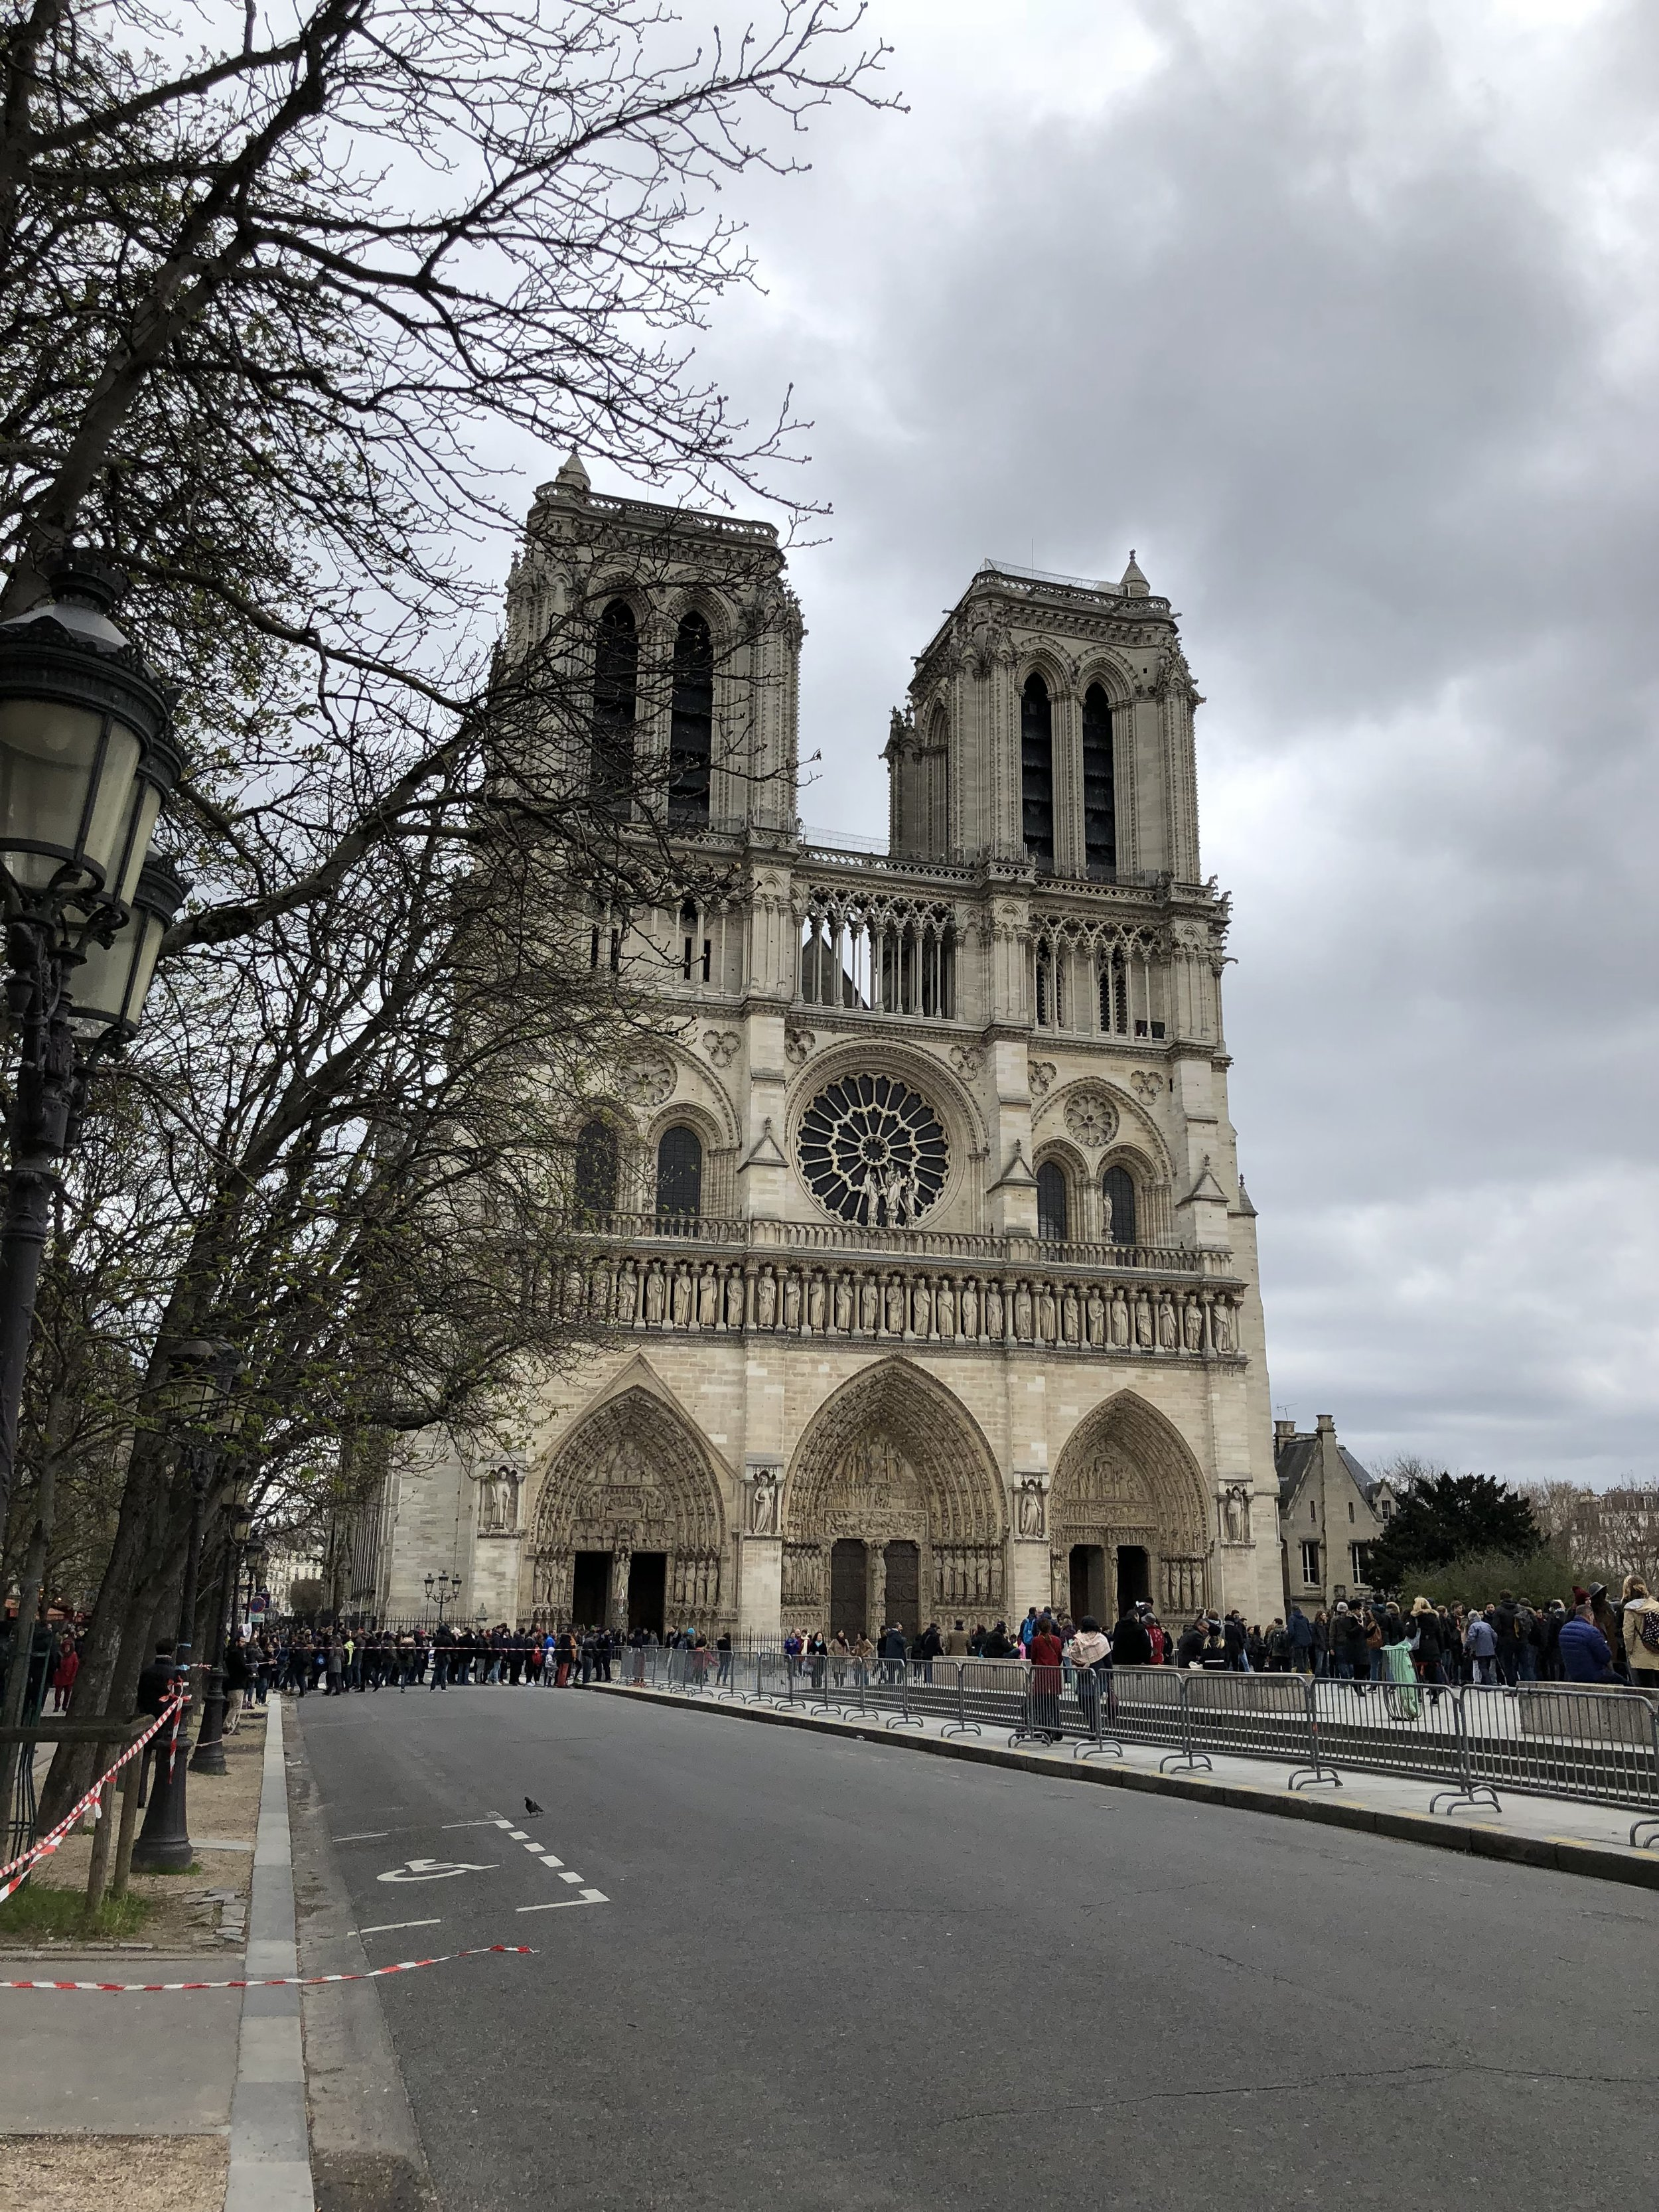 Front view of Notre Dame in Paris France